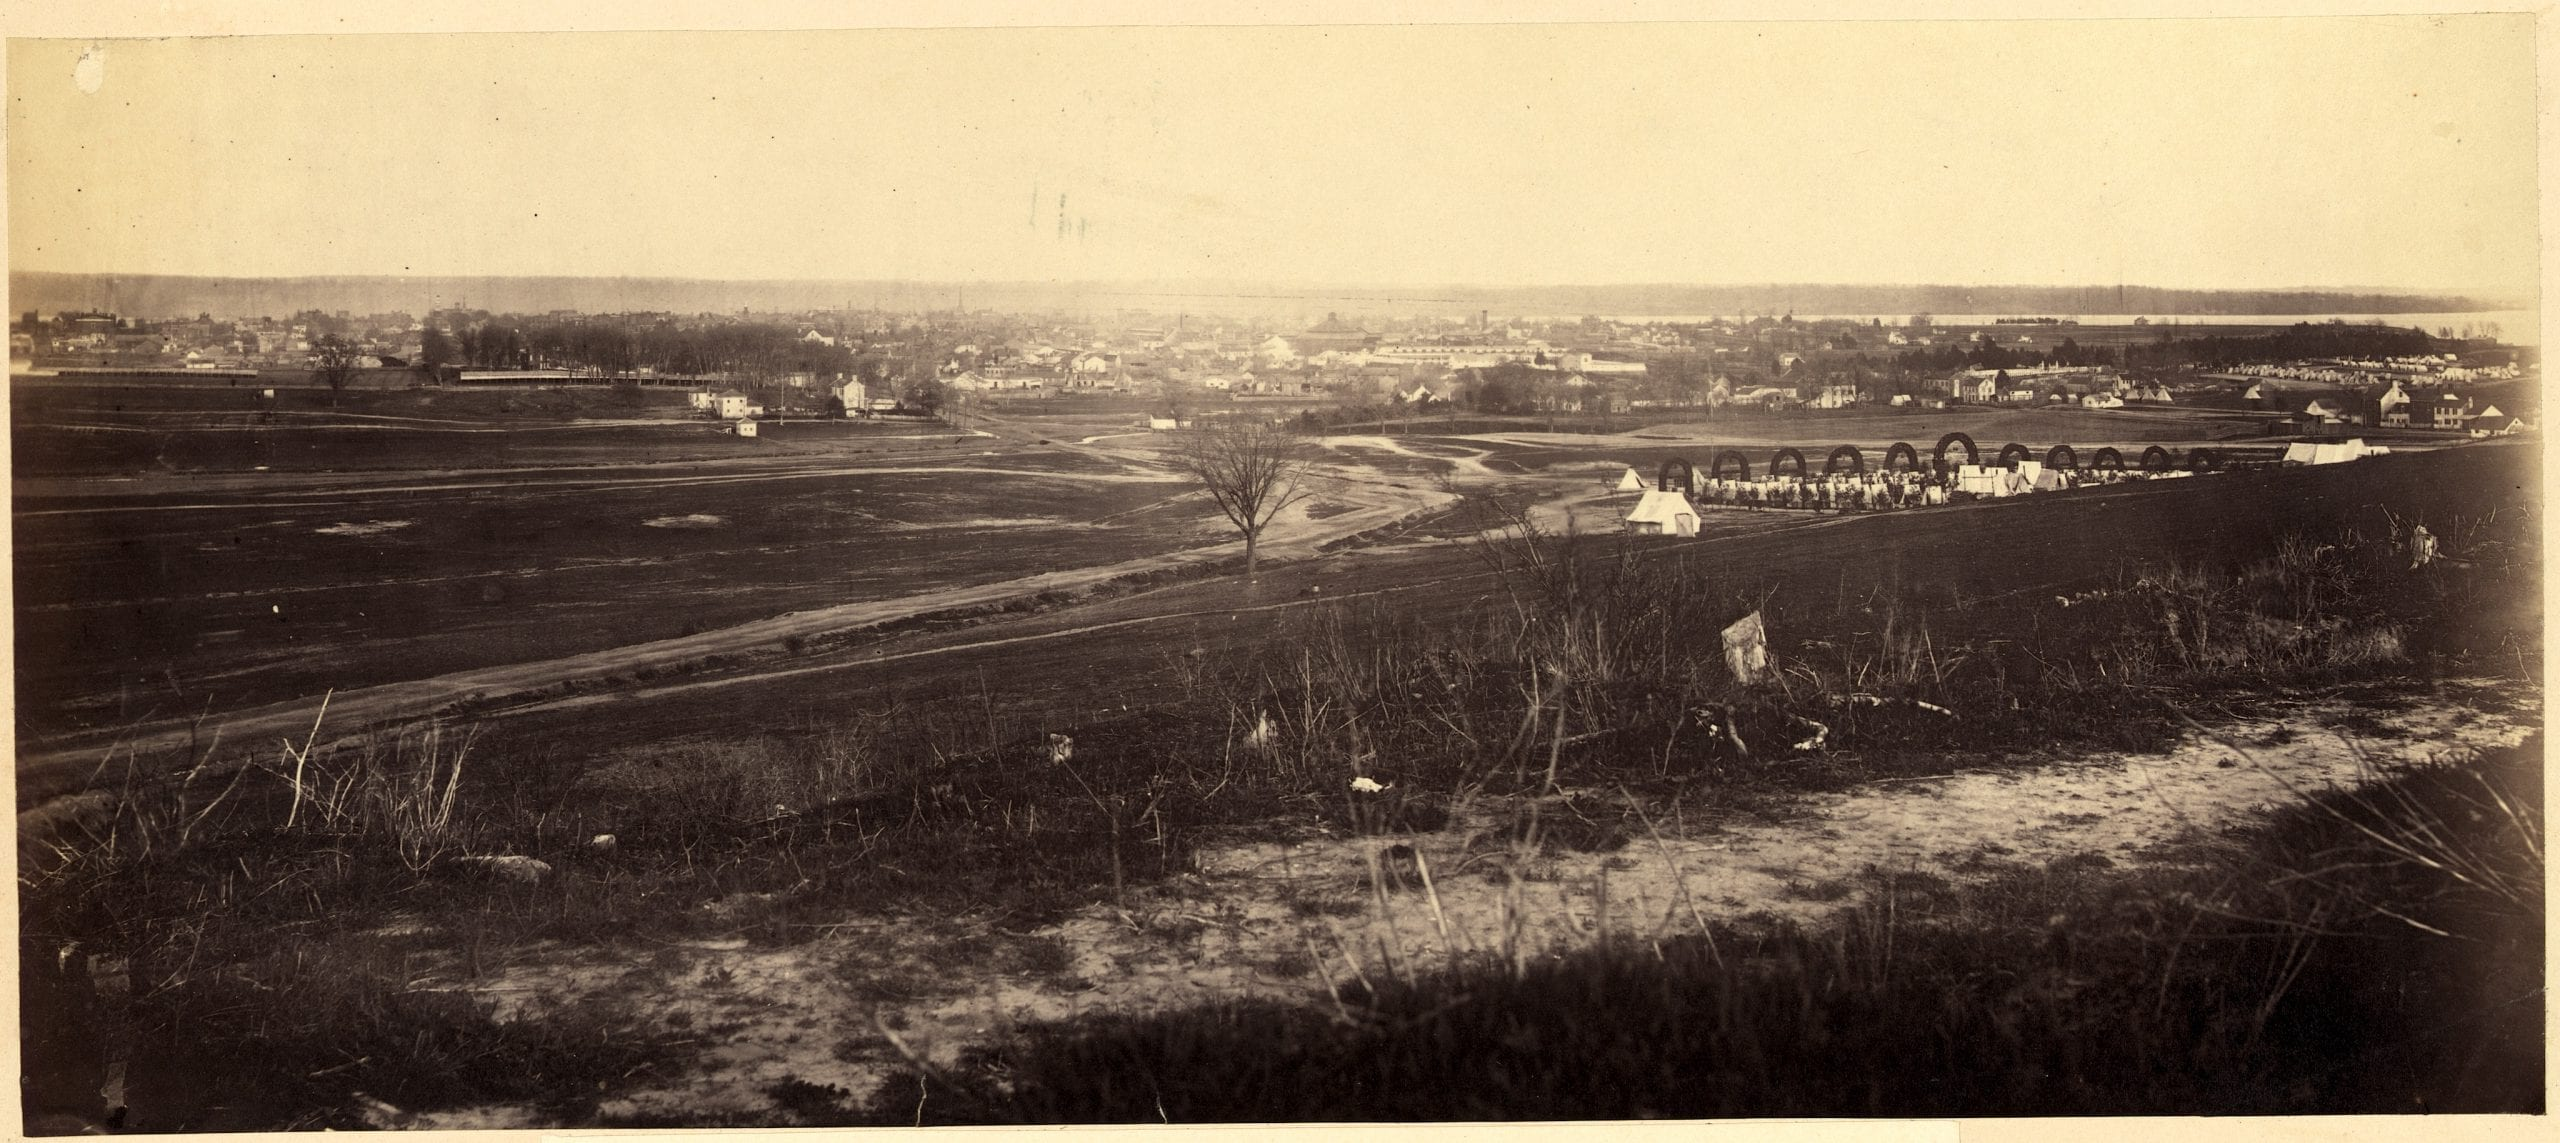 Amazing Detailed Landscape of Alexandria in 1864